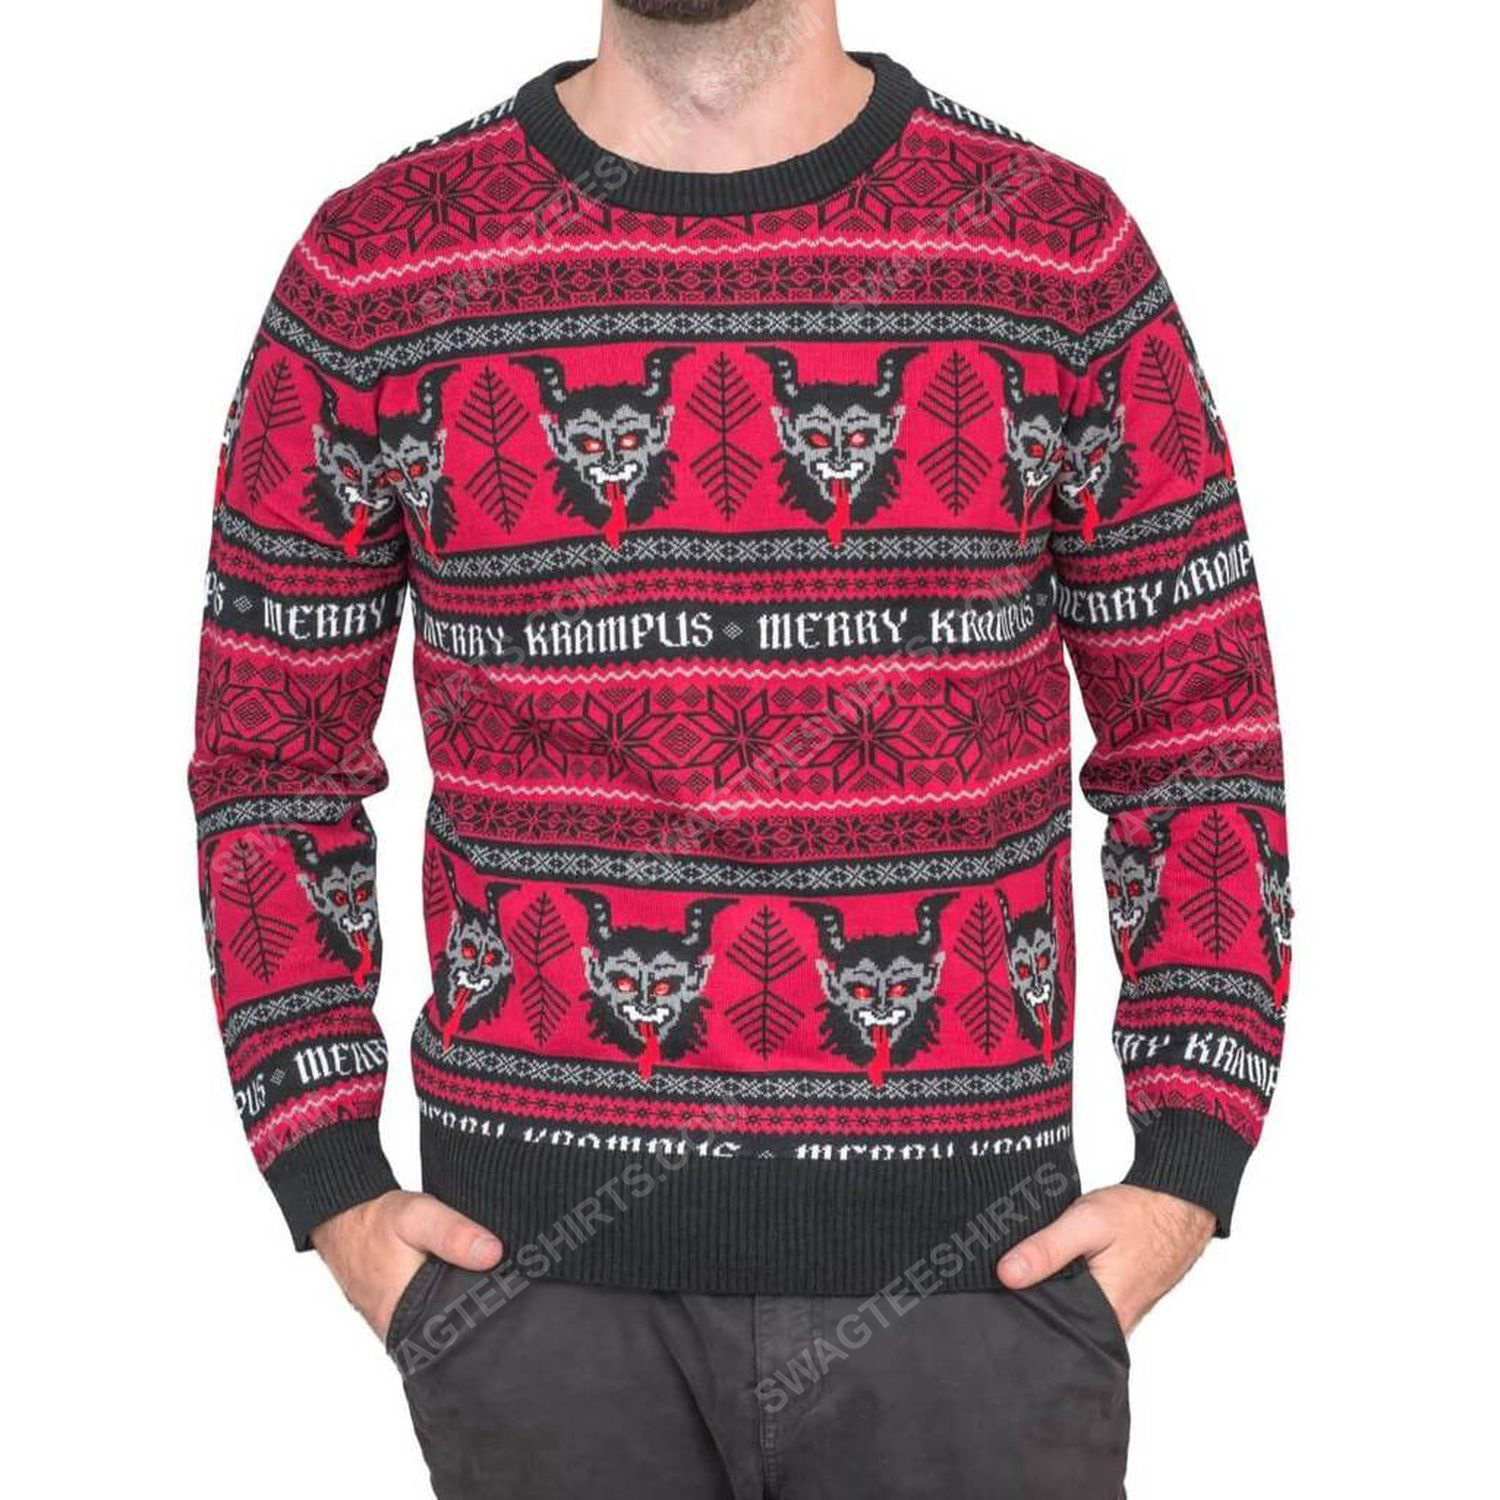 Christmas time merry krampus full print ugly christmas sweater 3 - Copy